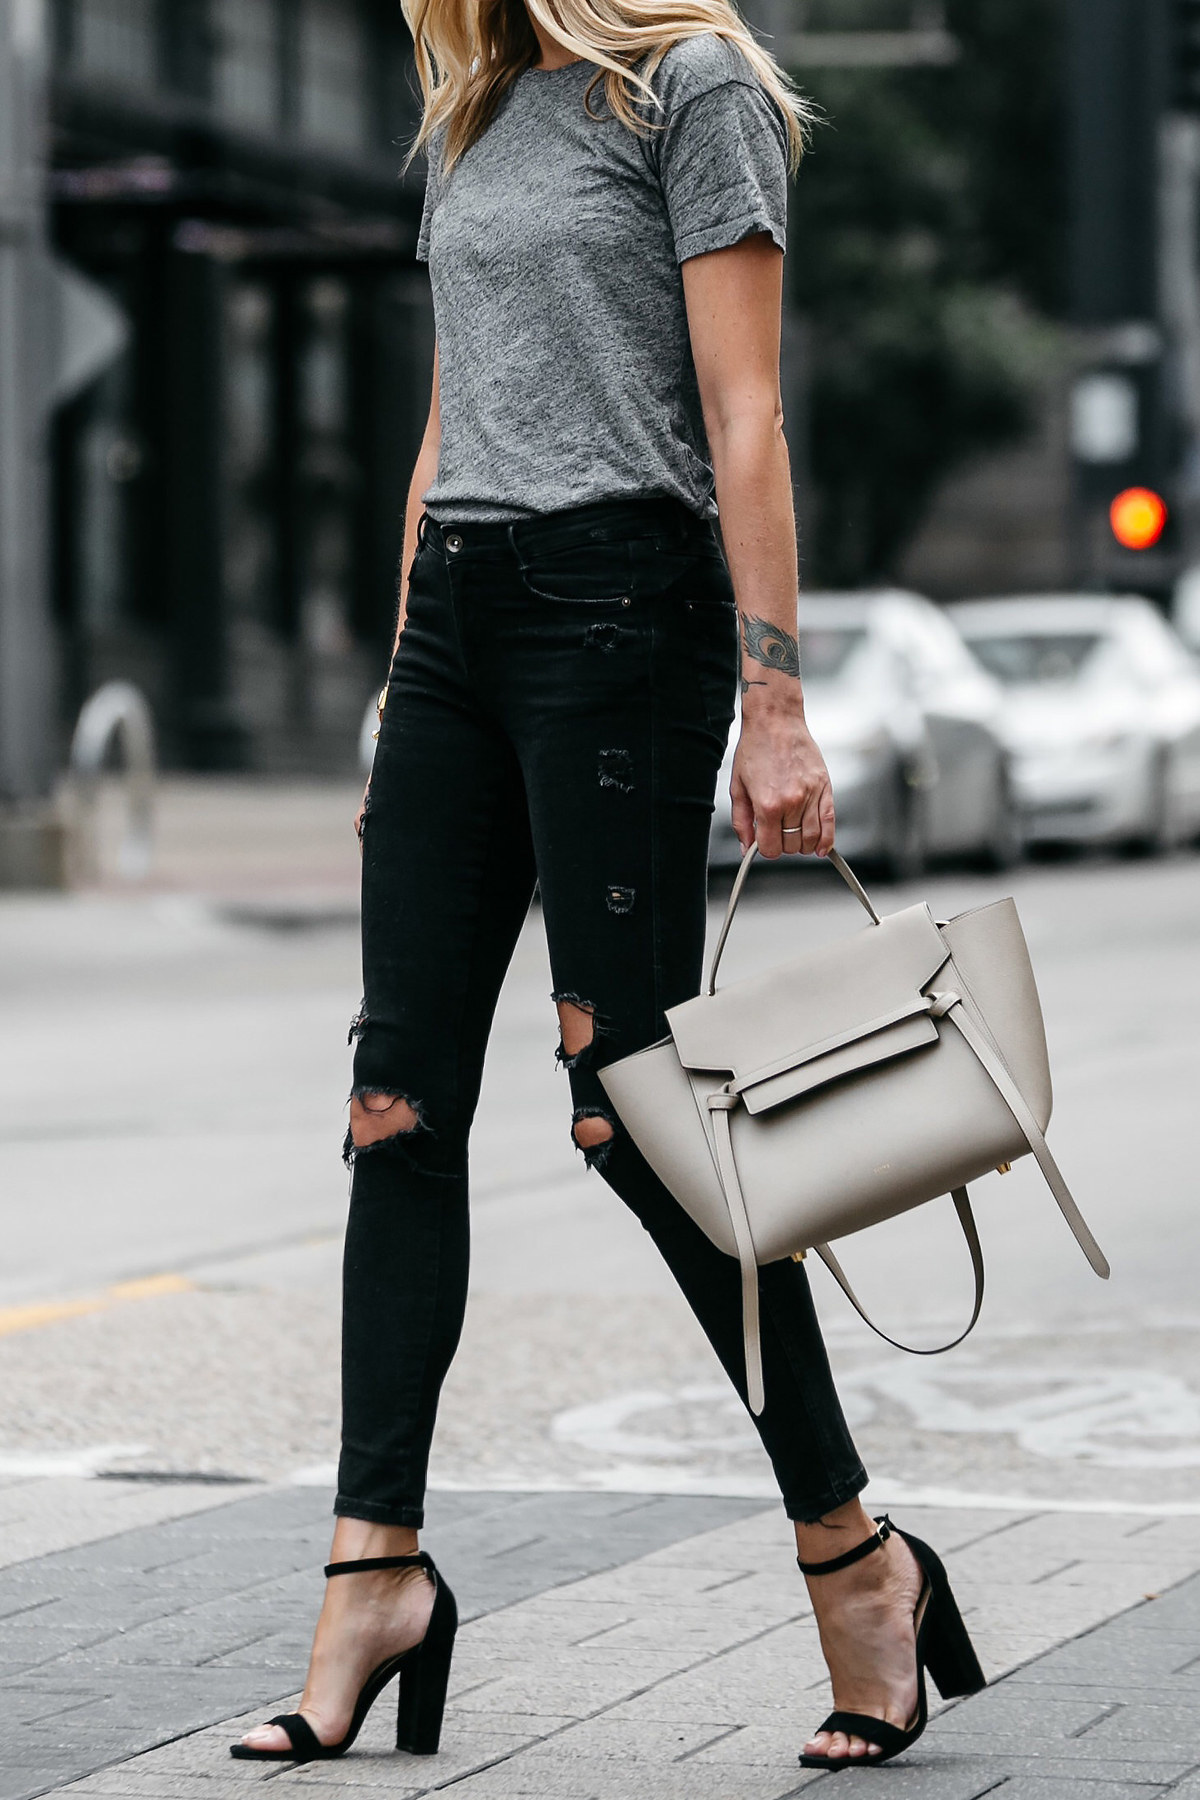 Madewell grey tshirt zara black ripped skinny jeans outfit steve madden black ankle strap heels celine belt bag street style dallas blogger fashion blogger